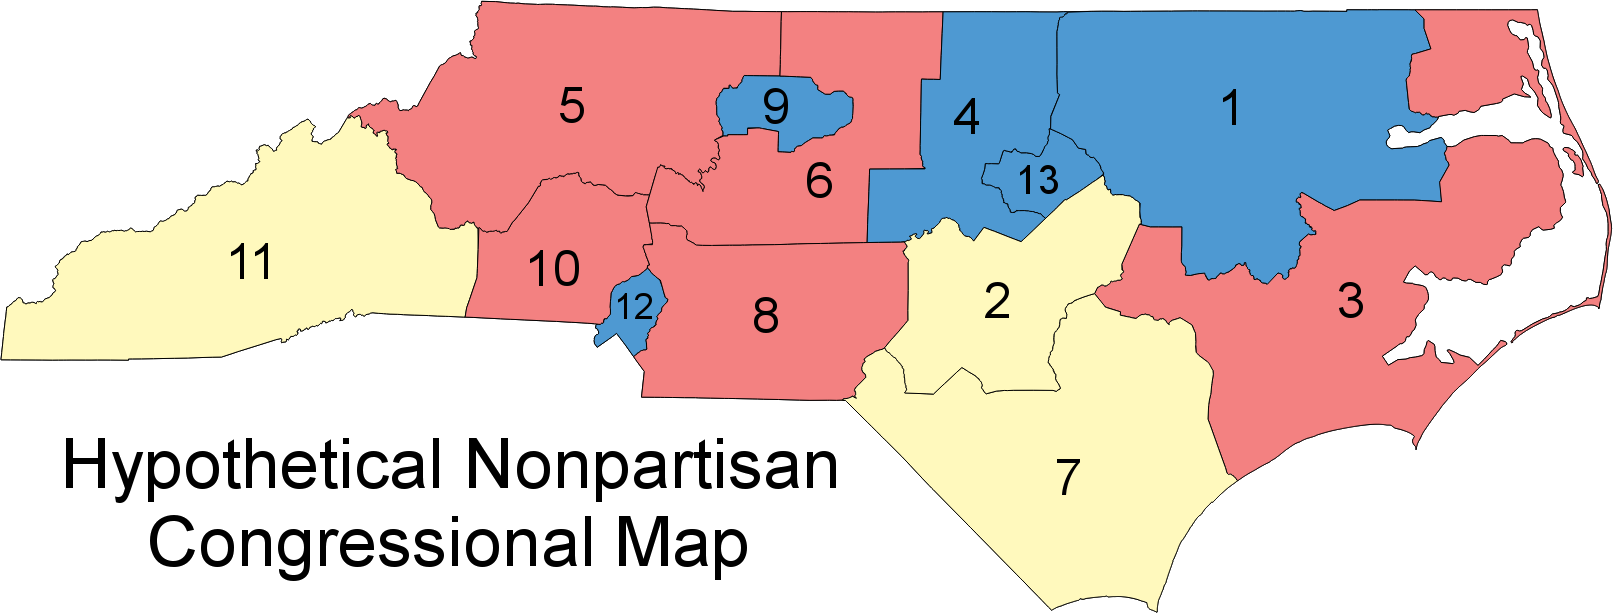 nonpartisan map below illustrates partisan election statistics and demographics summary